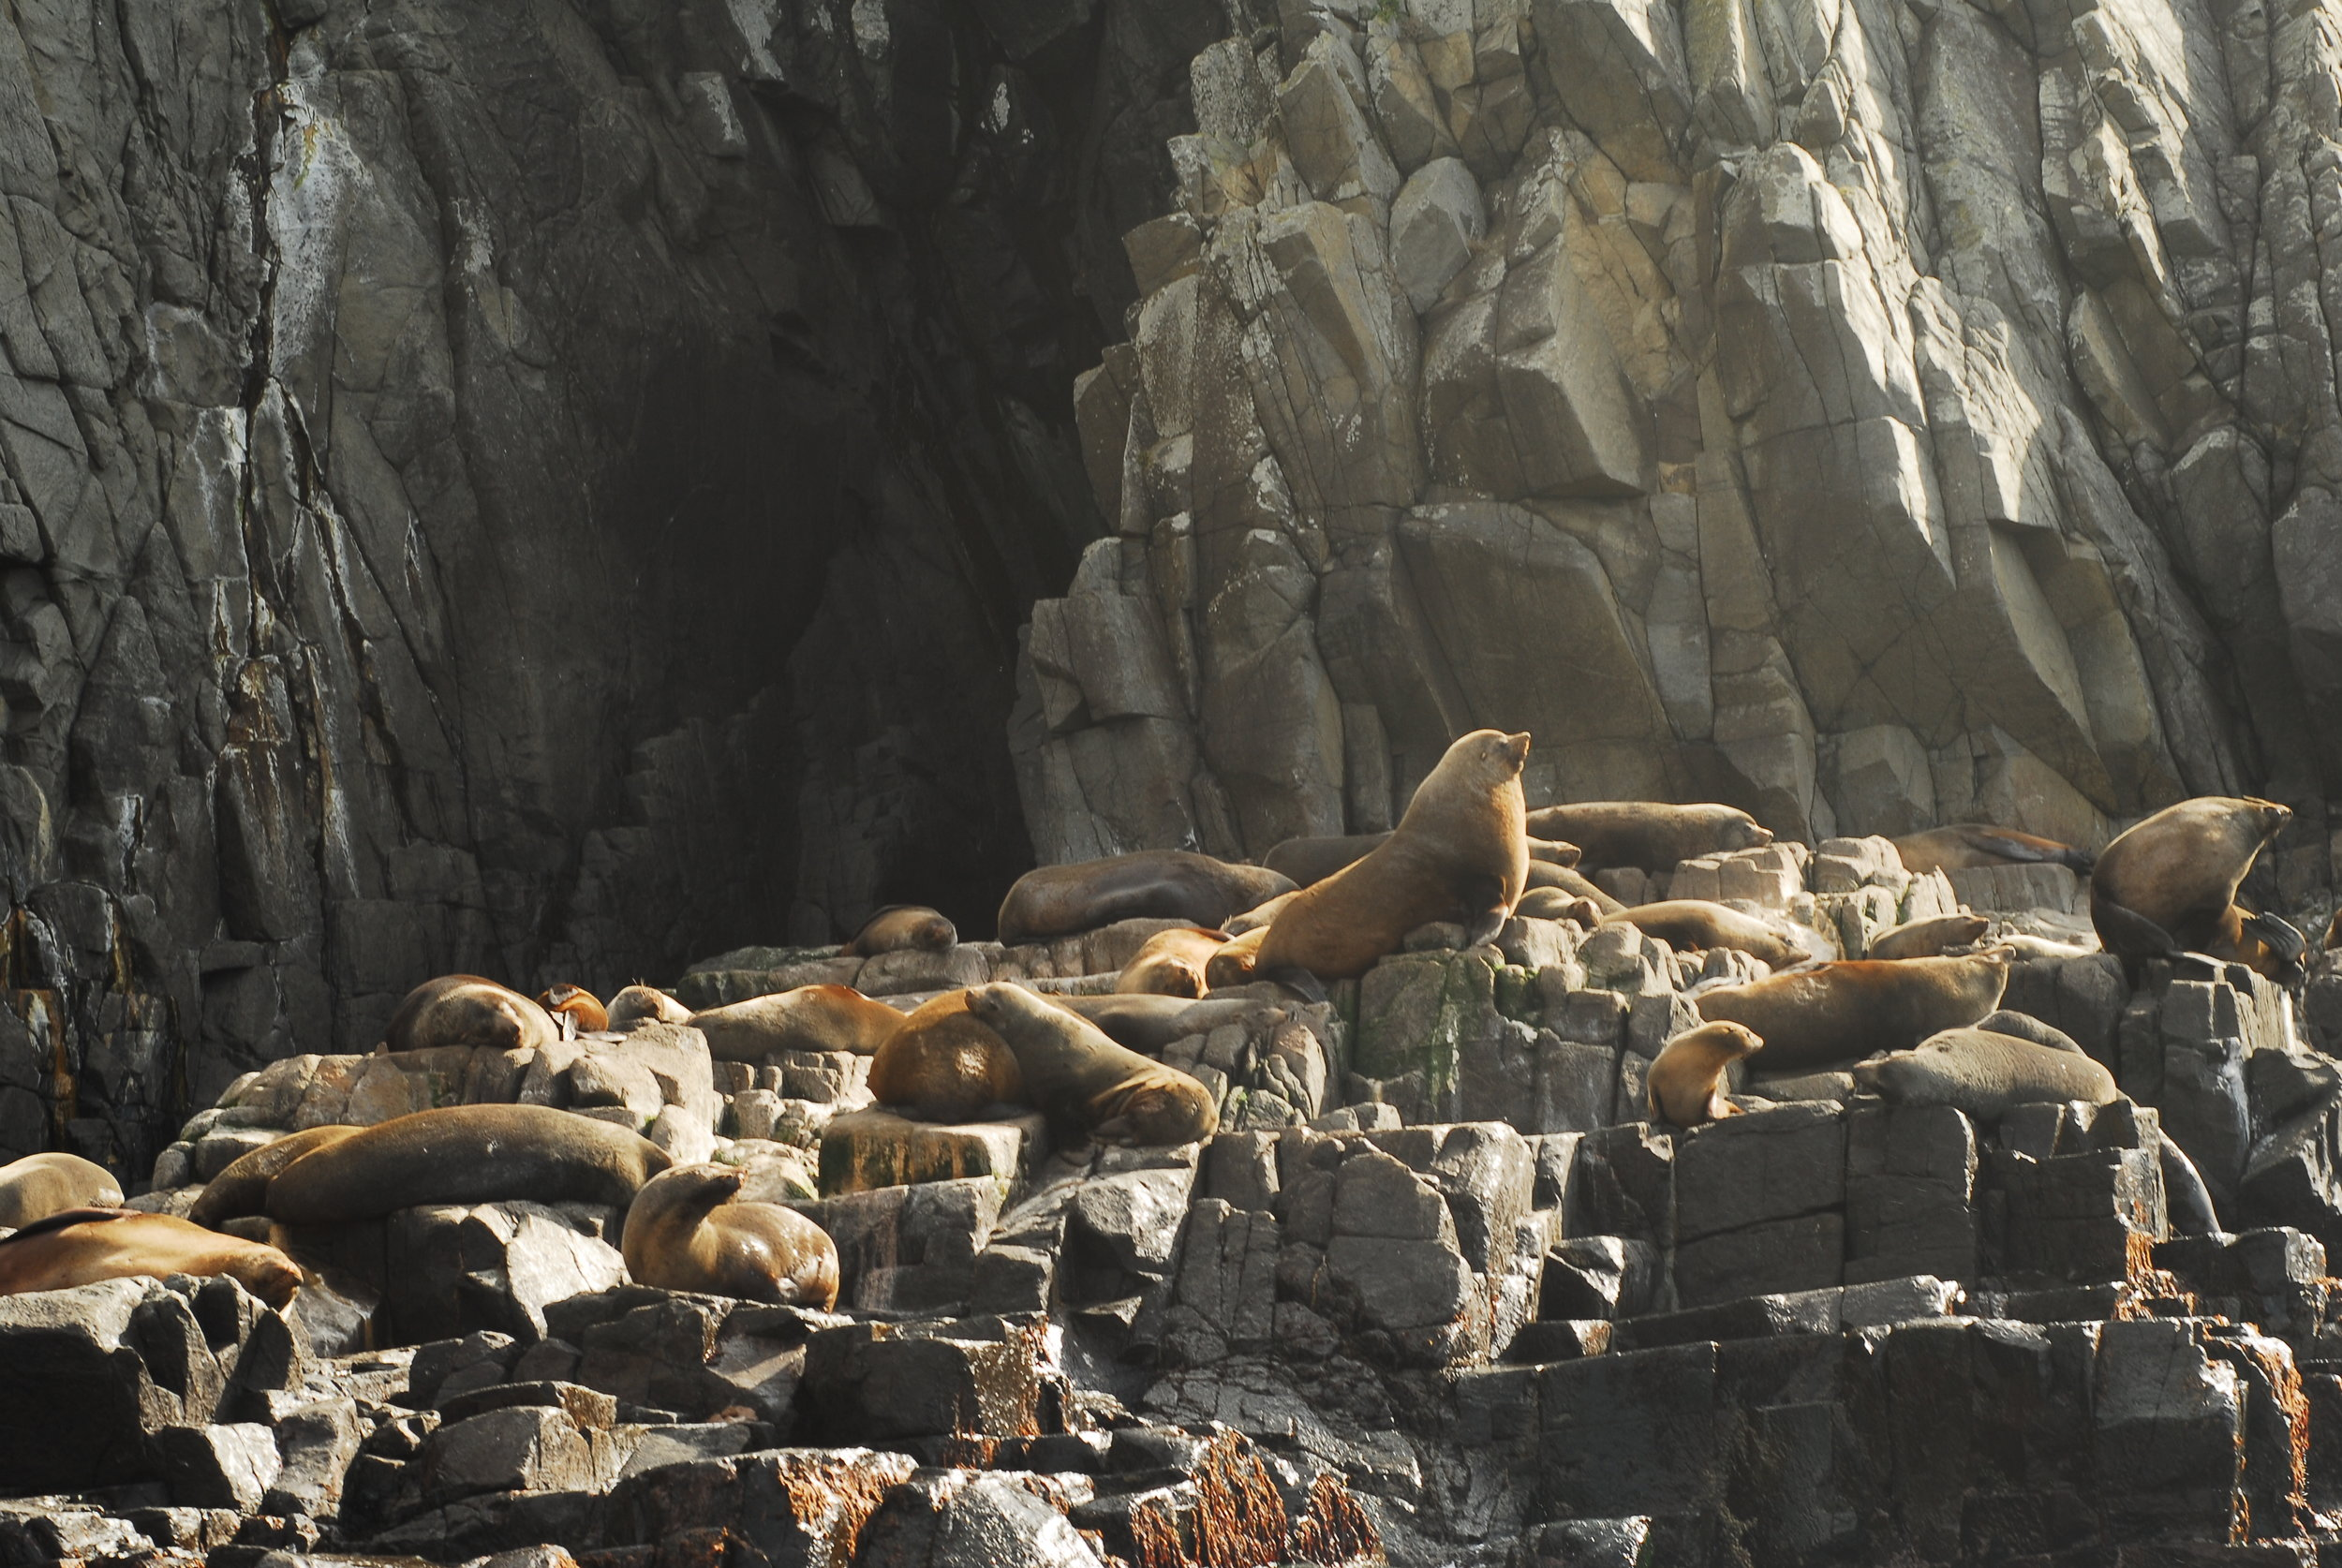 Brown fur seals near Bruny Island in Tasmania, Australia. Credit Samantha Andrews/Ocean Oculus